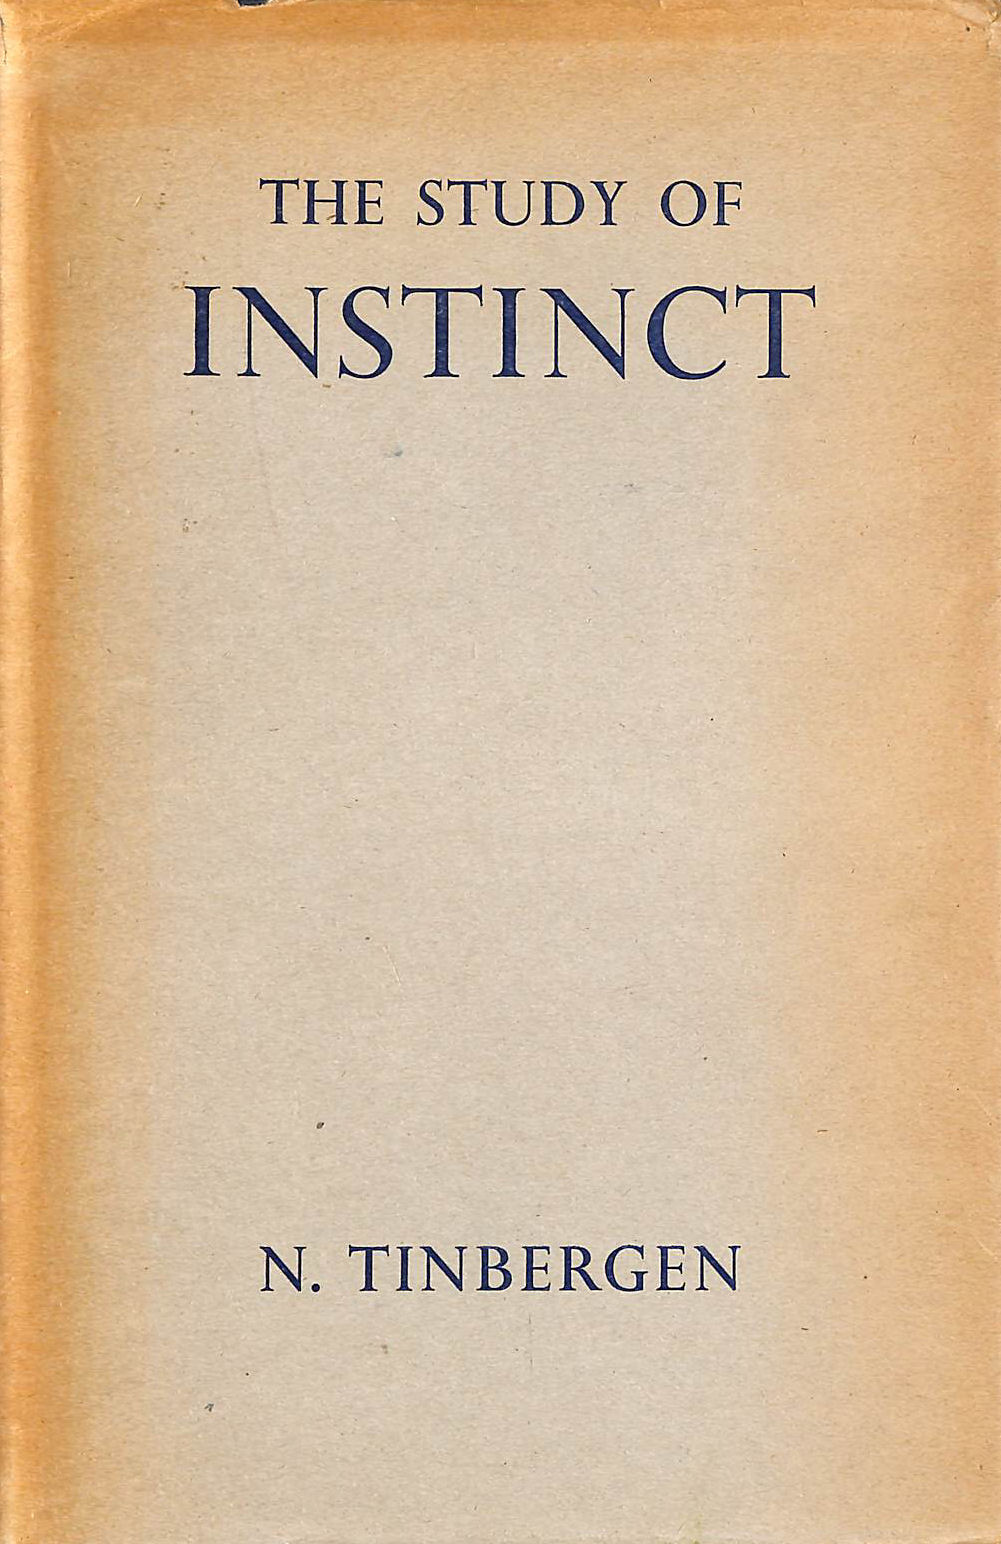 Image for The Study Of Instinct